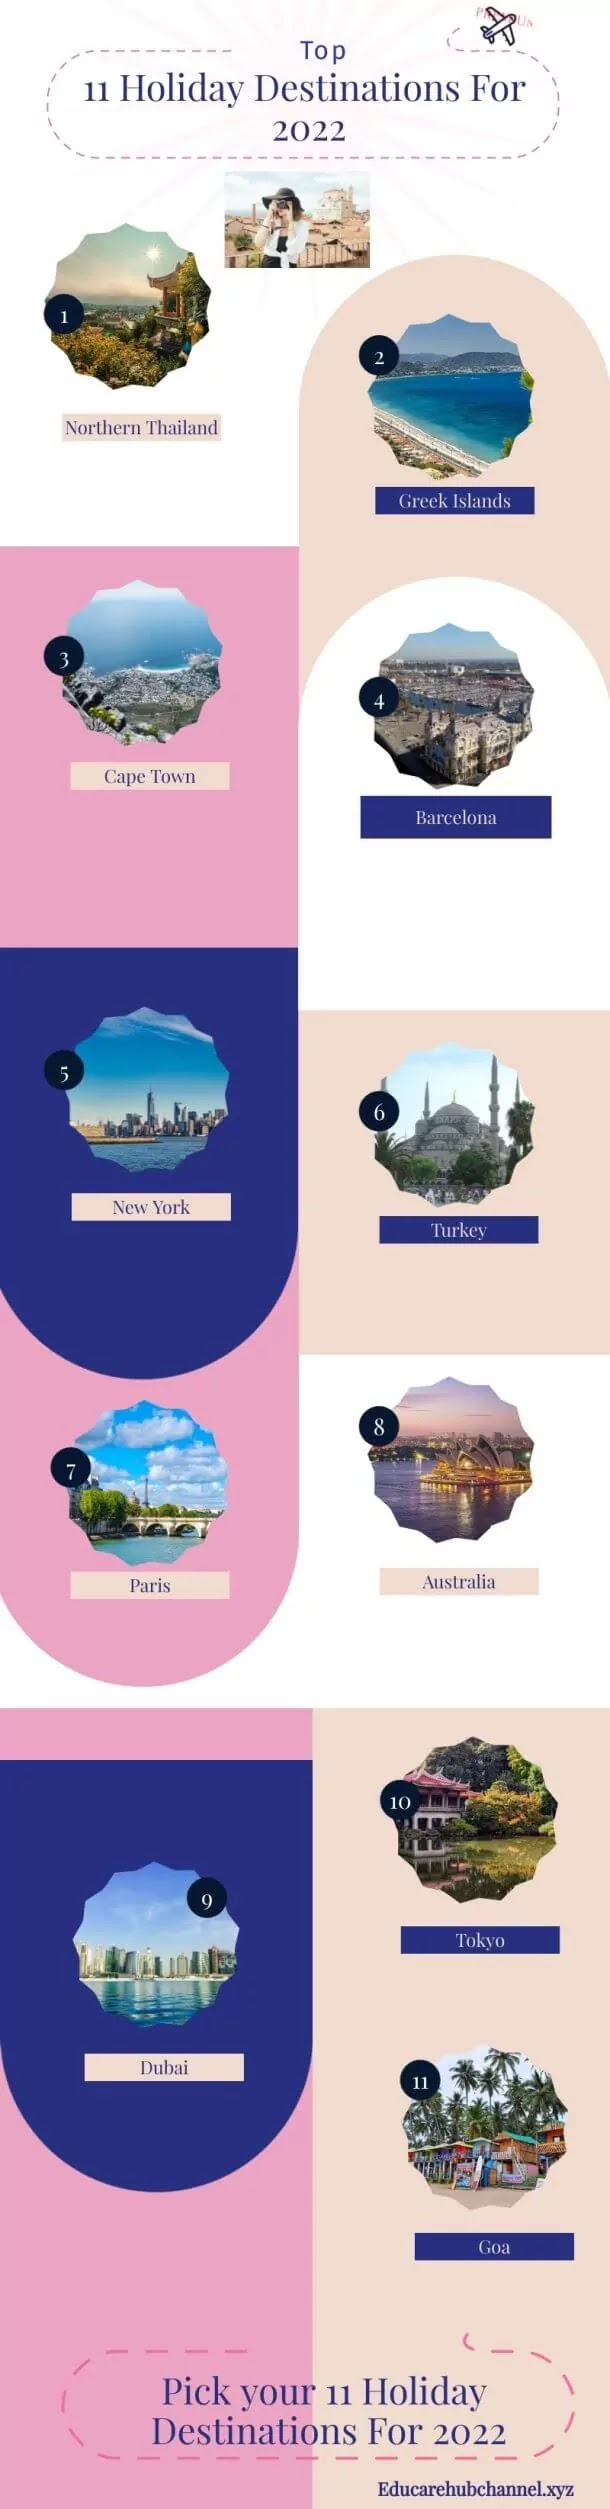 Top 11 Holiday Destinations For 2022